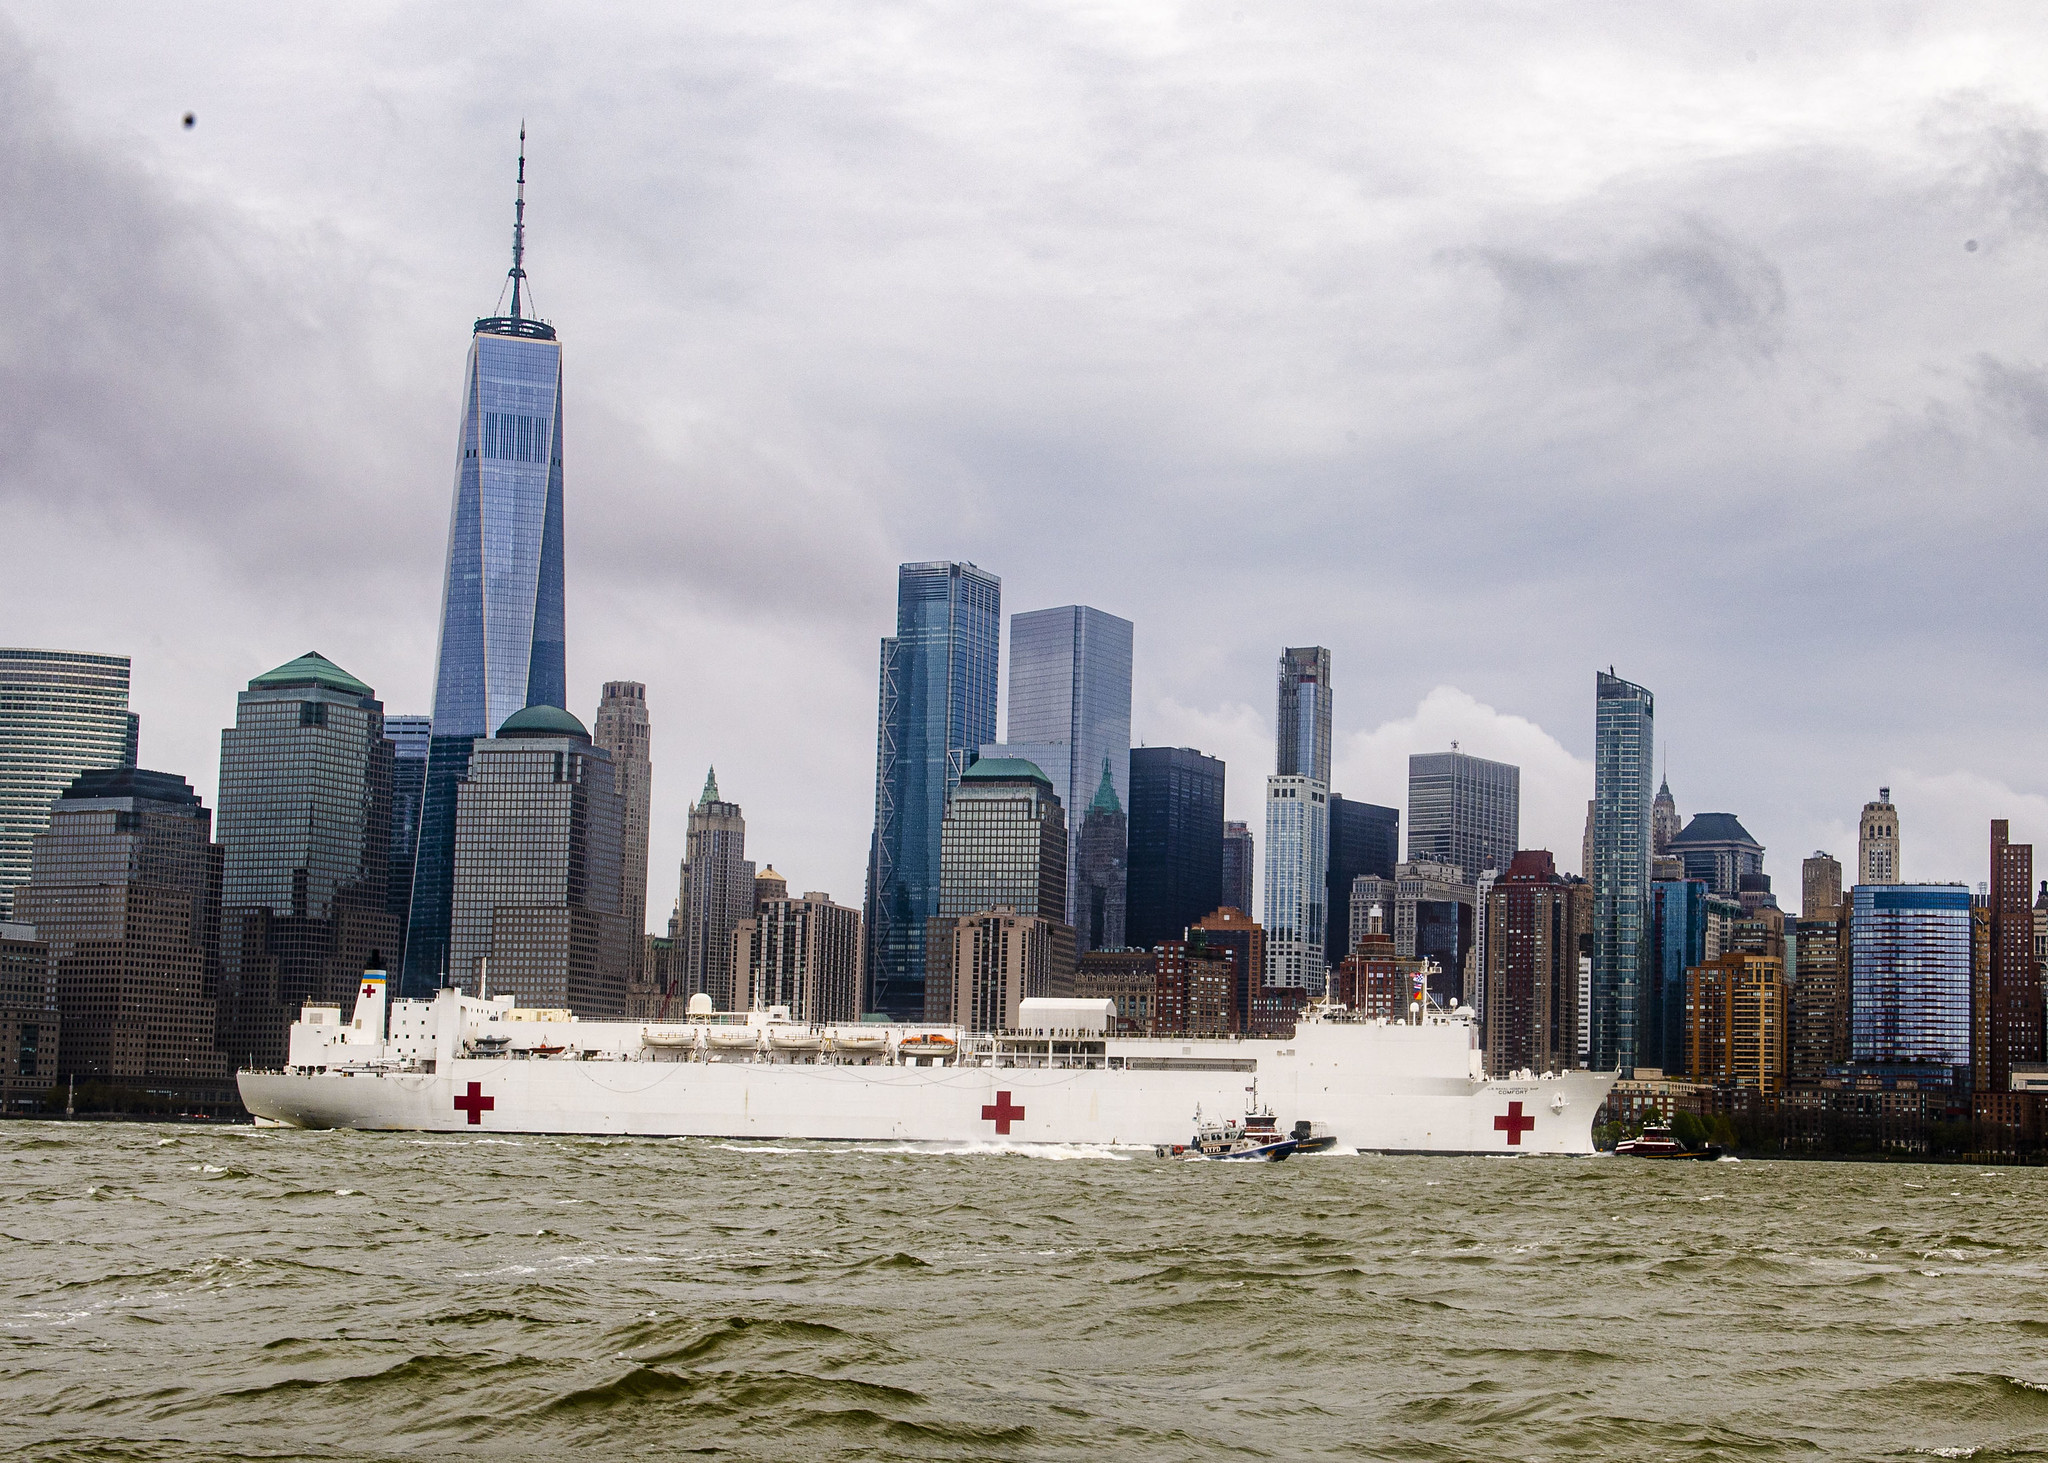 The hospital ship USNS Comfort (T-AH 20) departs New York Harbor on April 30, 2020, after treating patients in New York and New Jersey. (MC3 Brendan Fitzgerald/Navy)